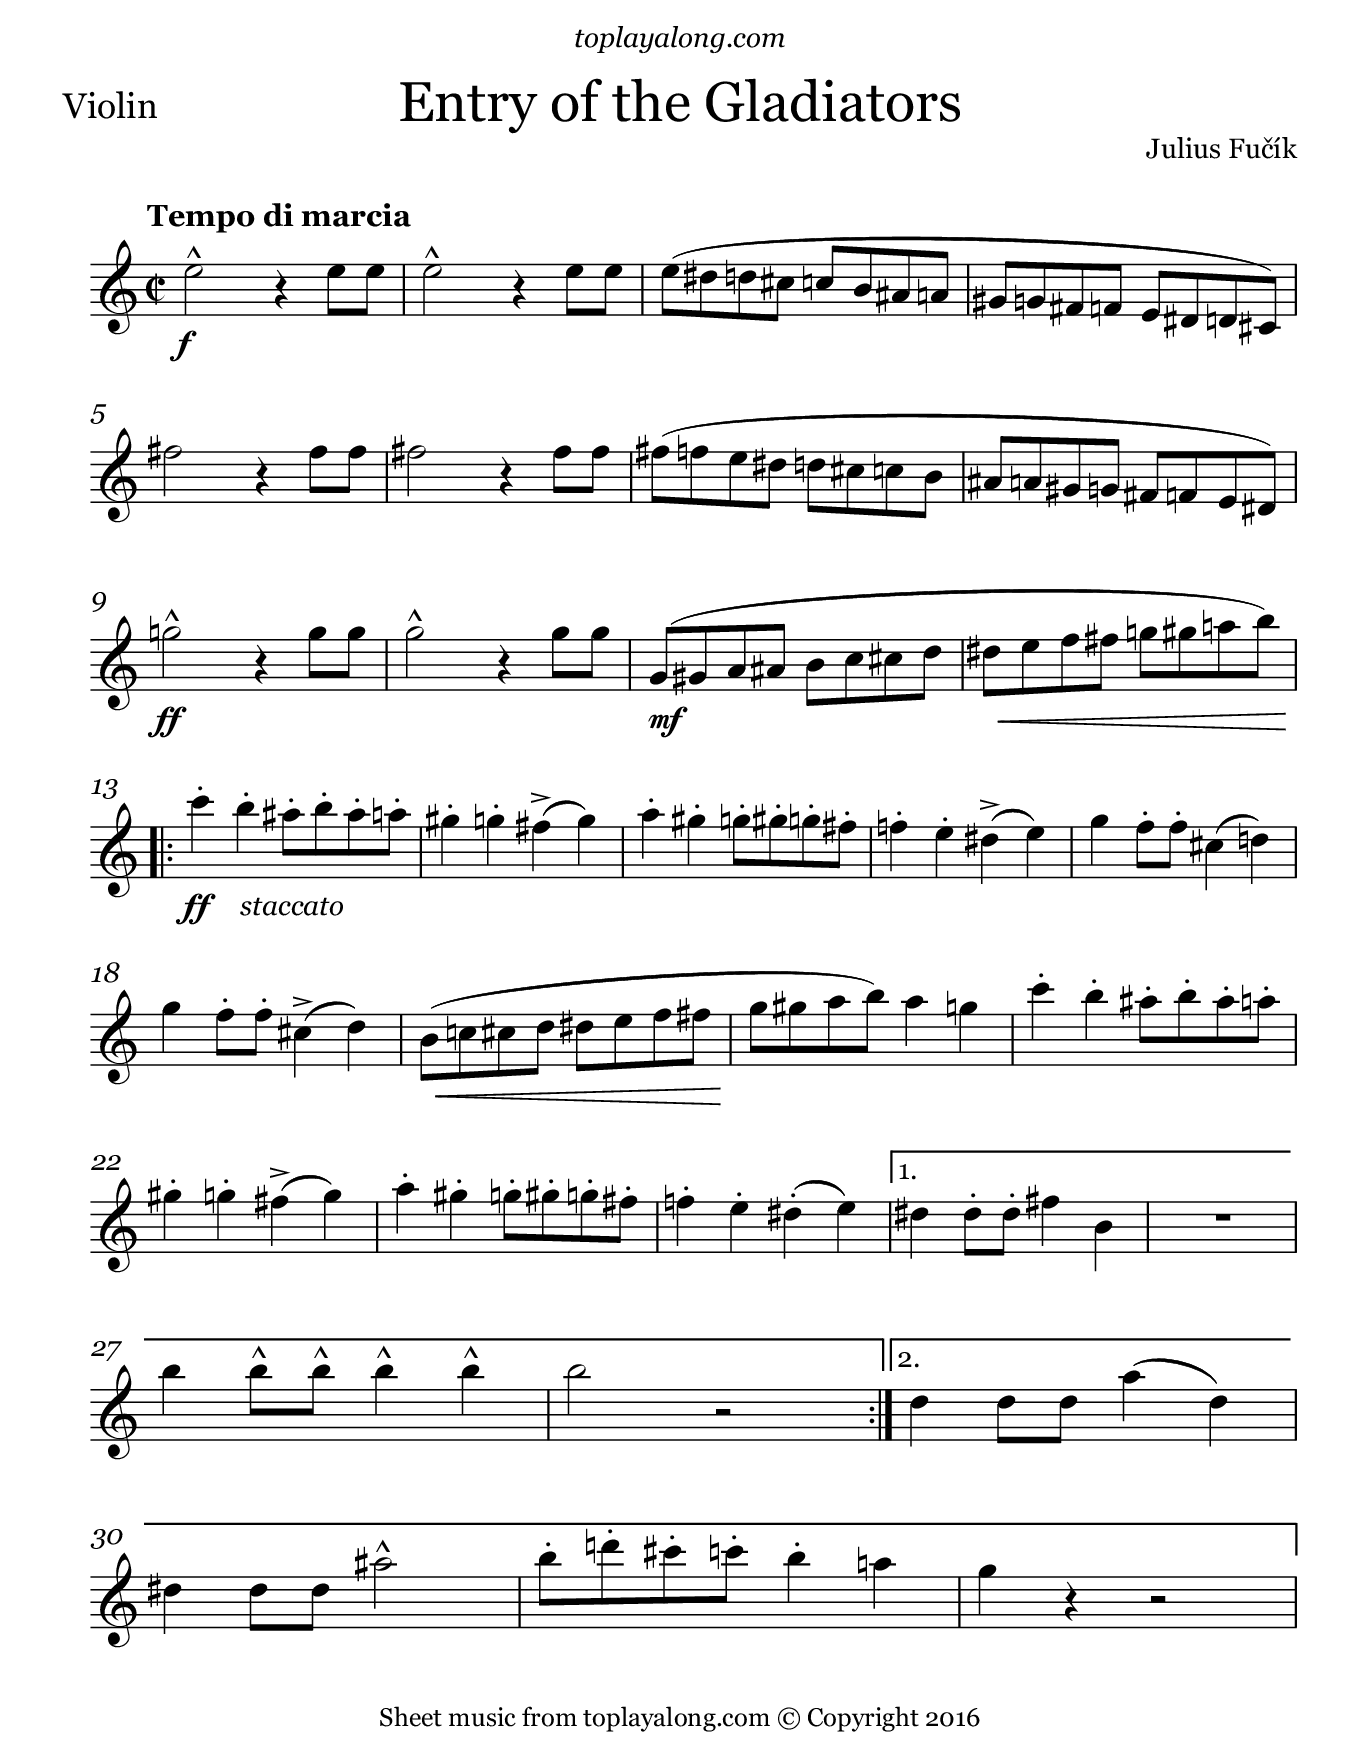 Entry of the Gladiators by Fučík. Sheet music for Violin, page 1.